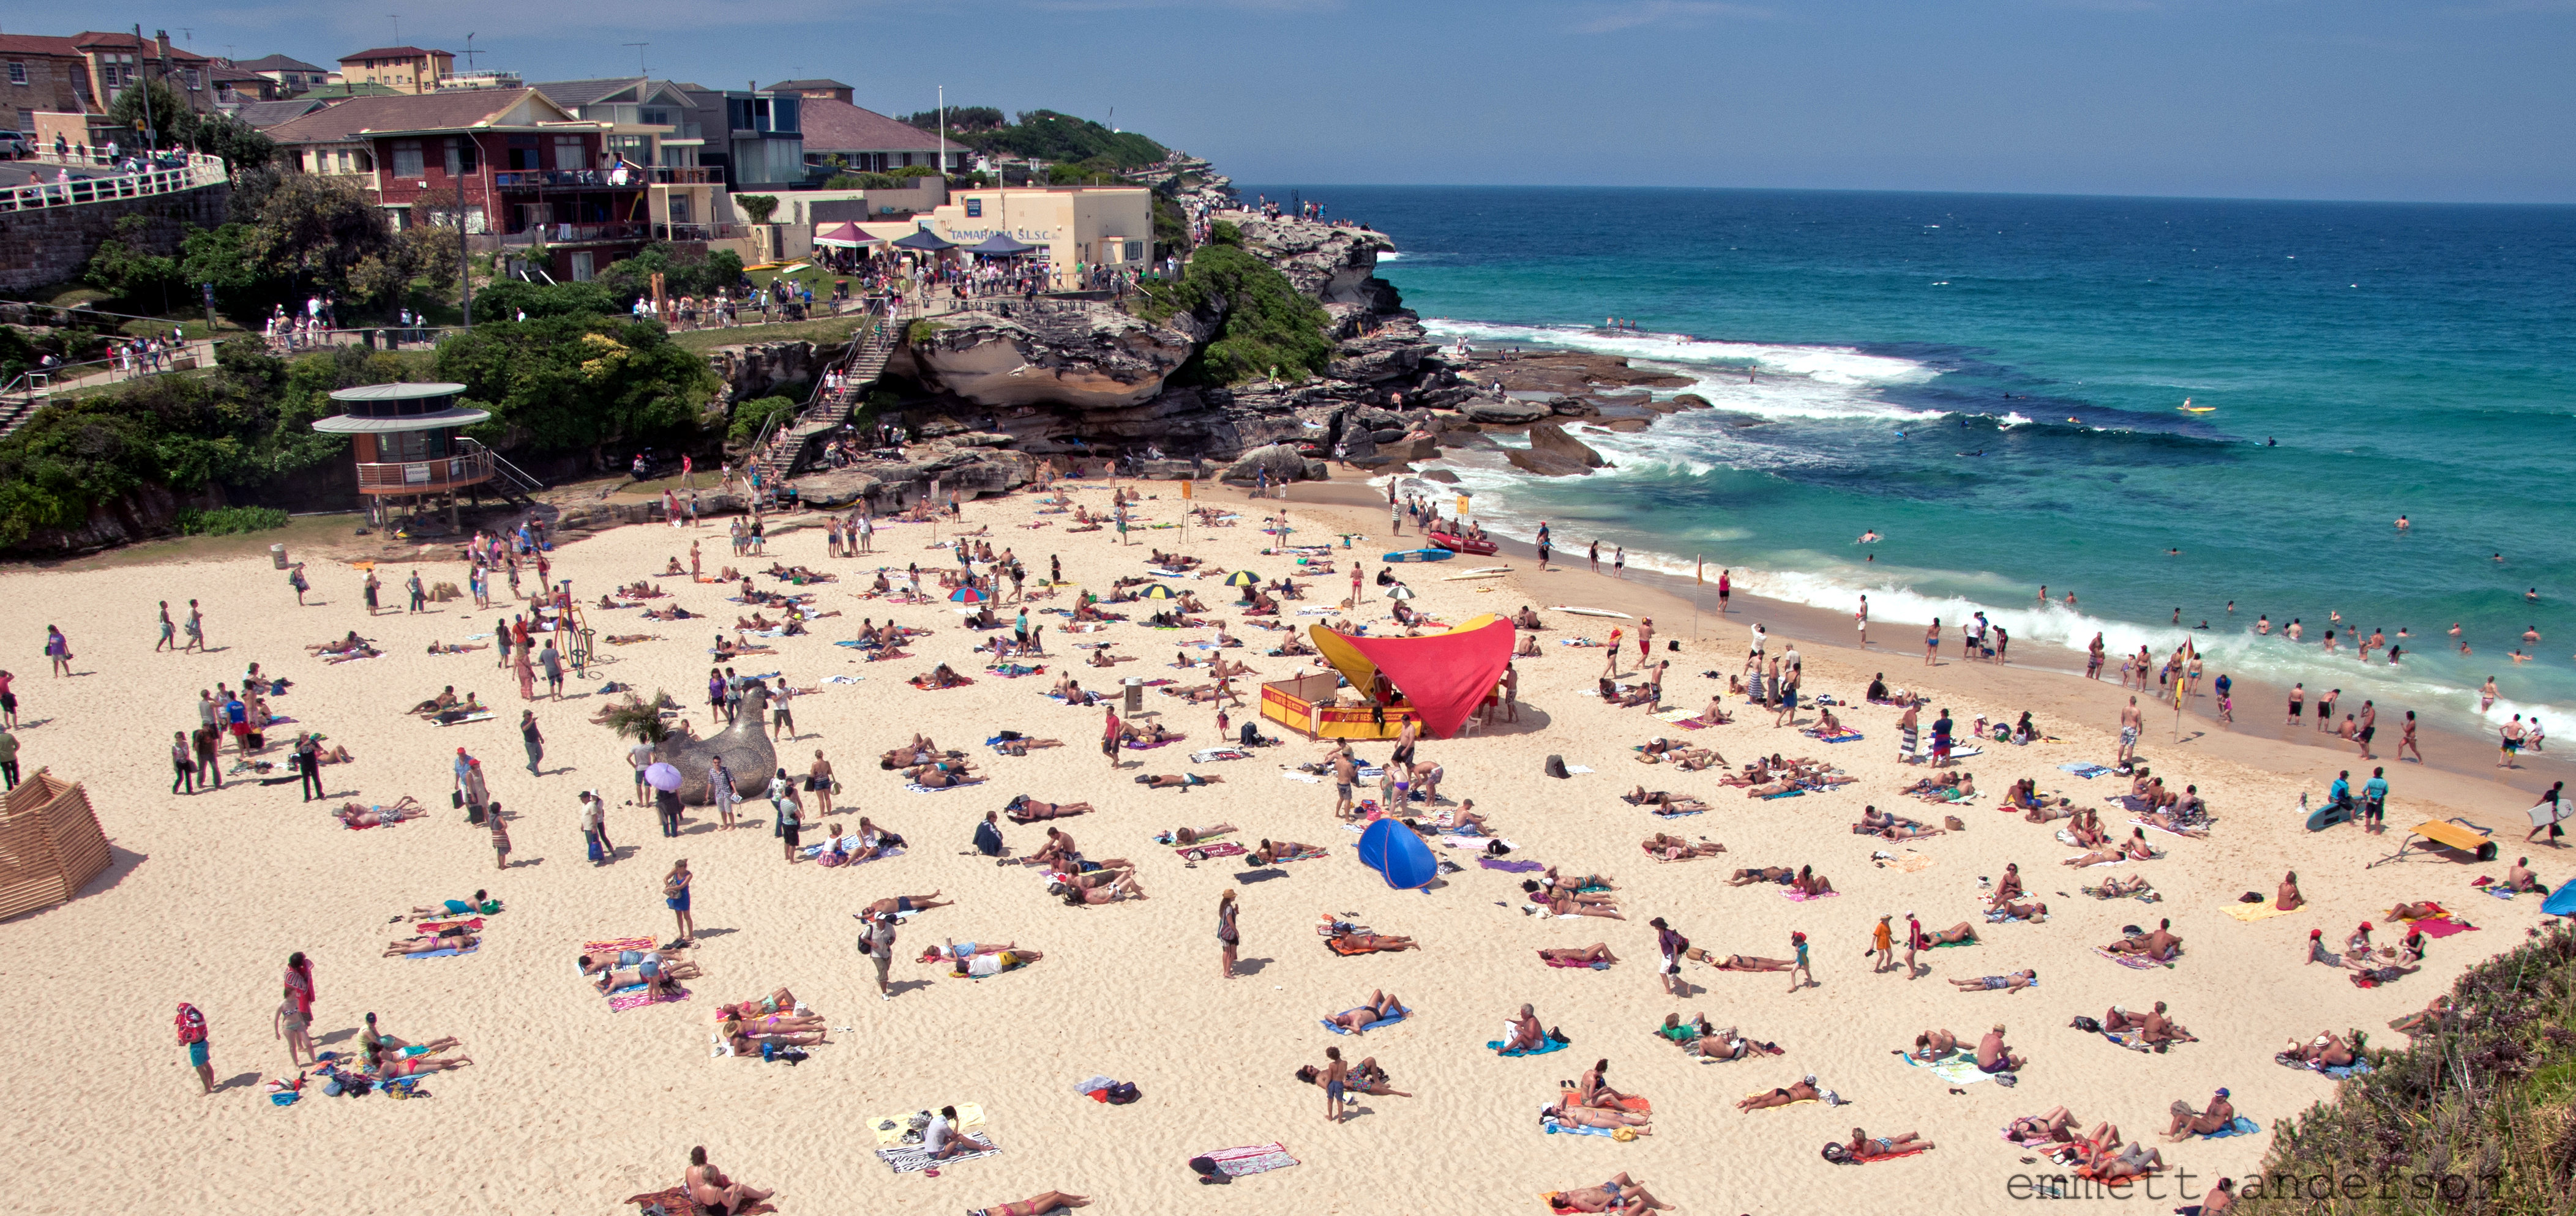 Tamarama Beach By emmett anderson [CC-BY-2.0 (http://creativecommons.org/licenses/by/2.0)], via Wikimedia Commons